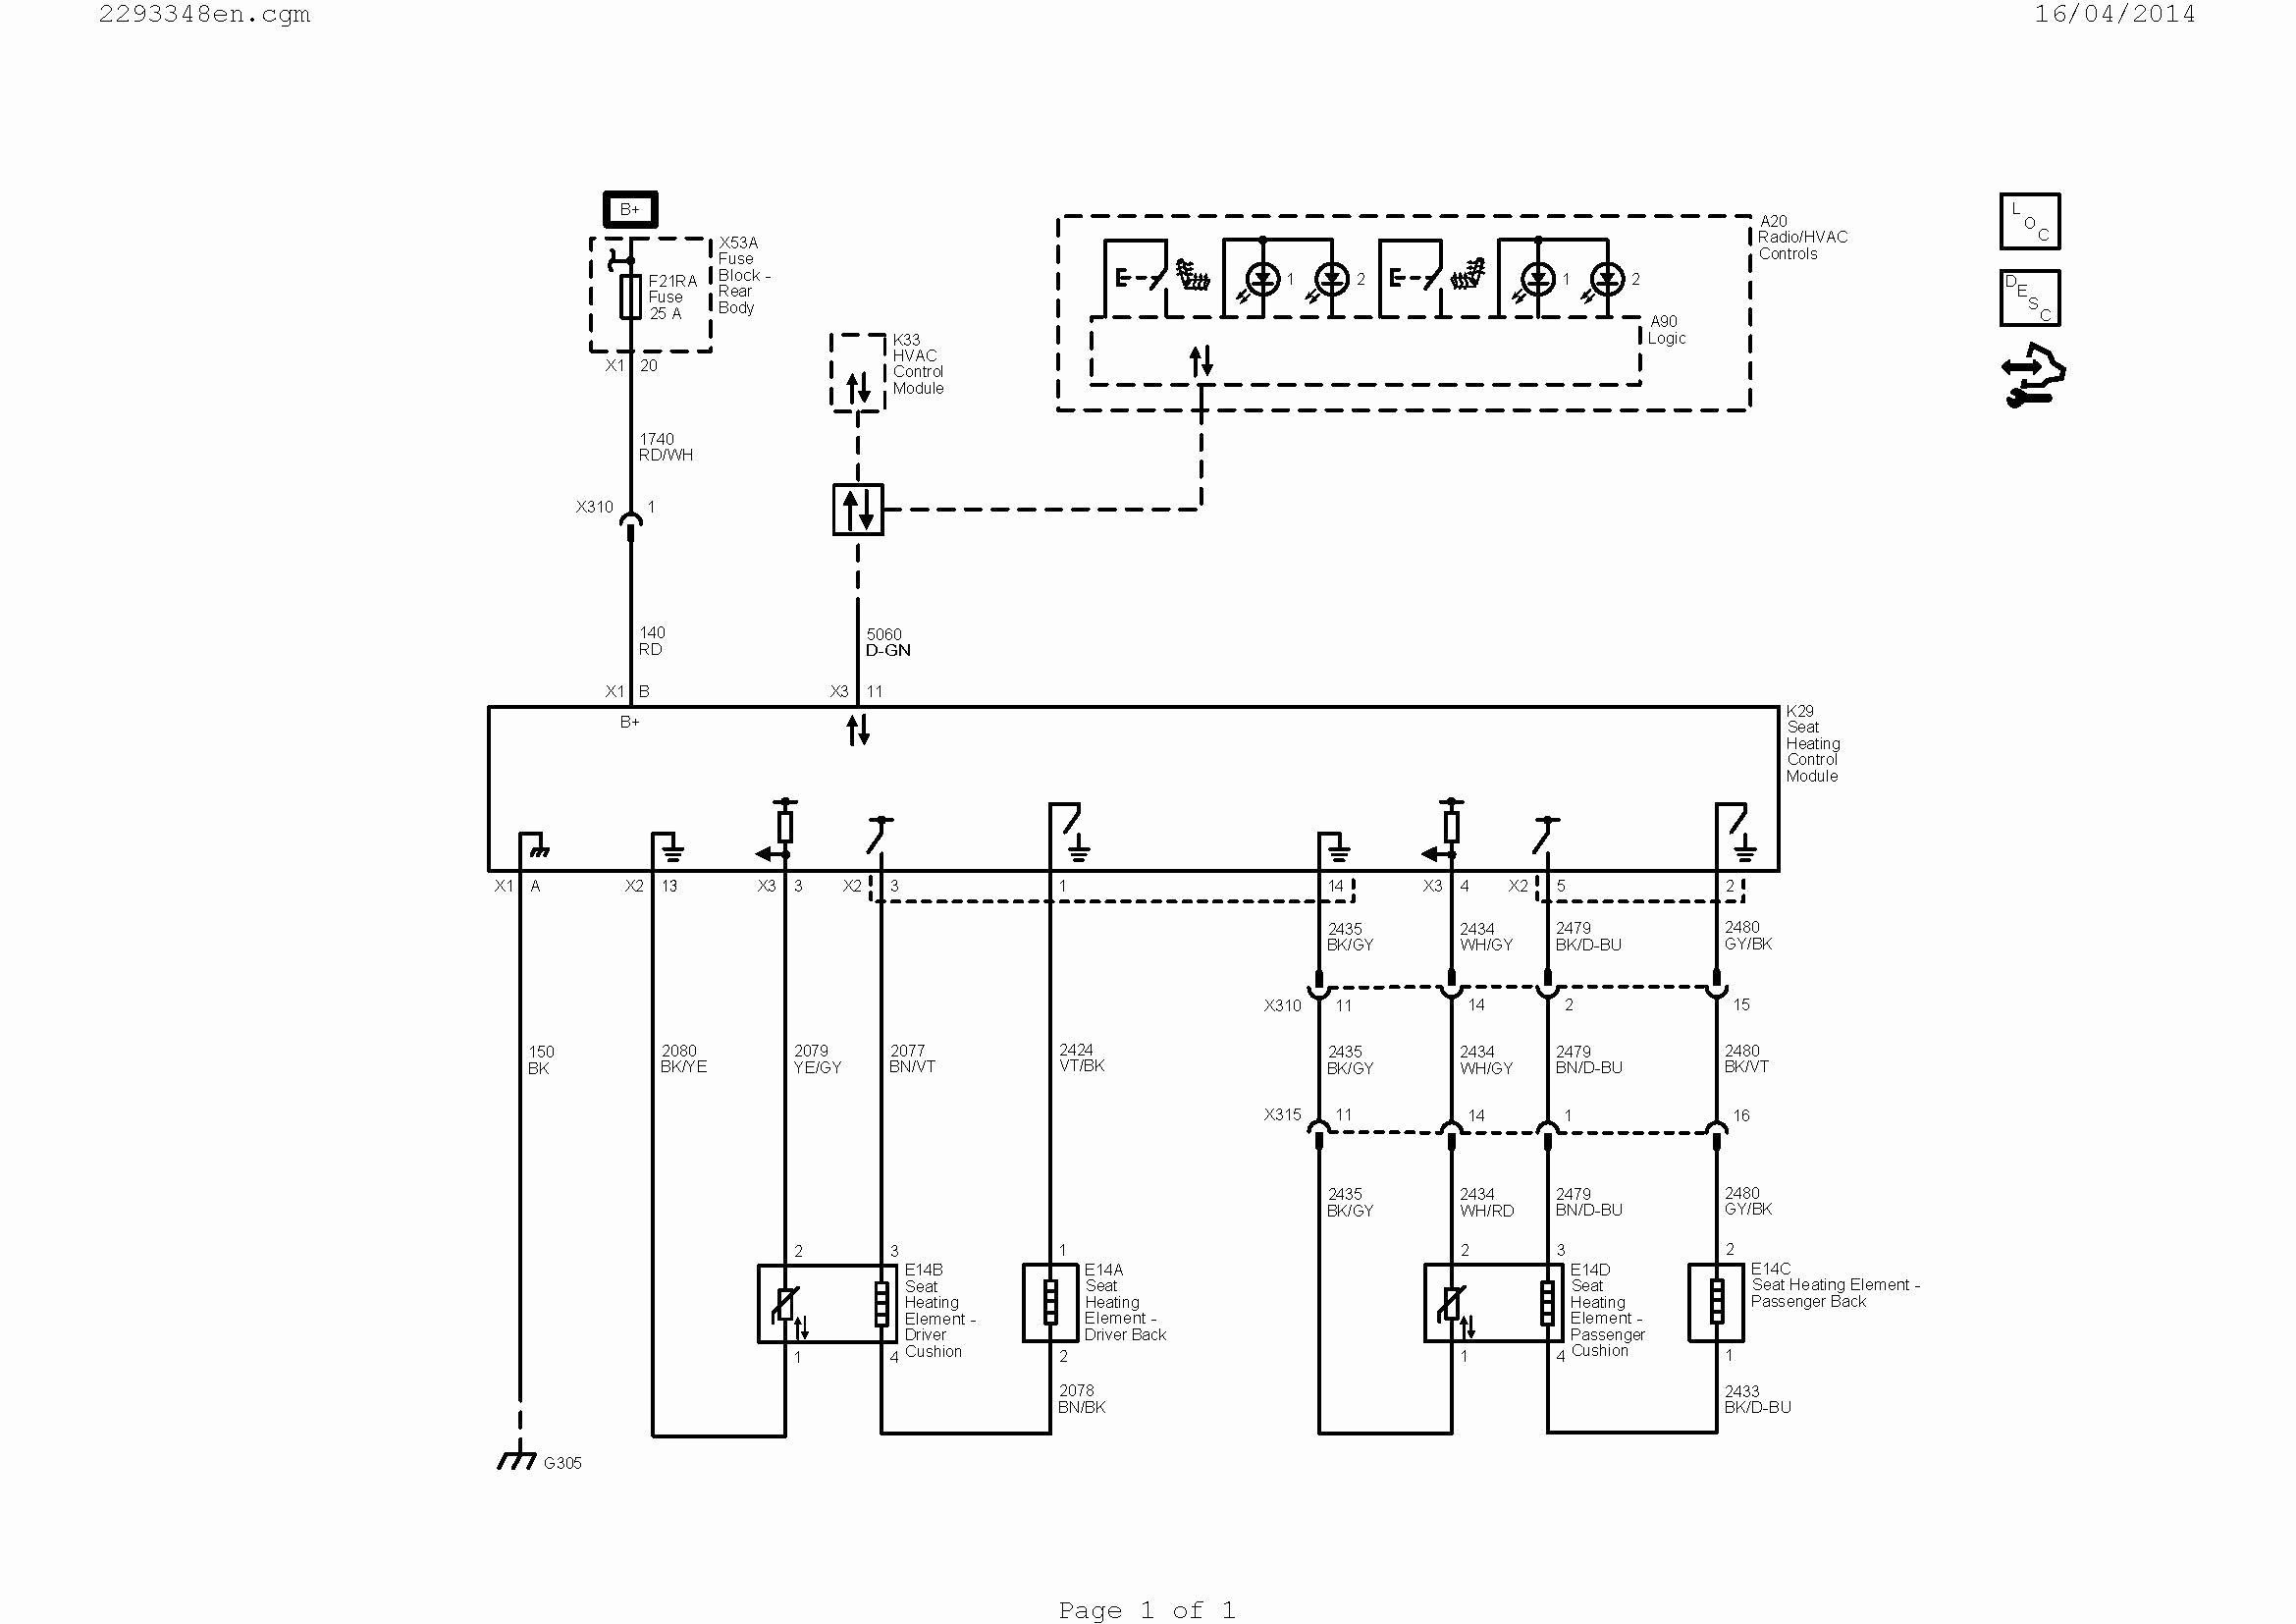 Window Switch Diagram 60 Lovely Wiring Diagram for Gmc Trailer Plug Of Window Switch Diagram